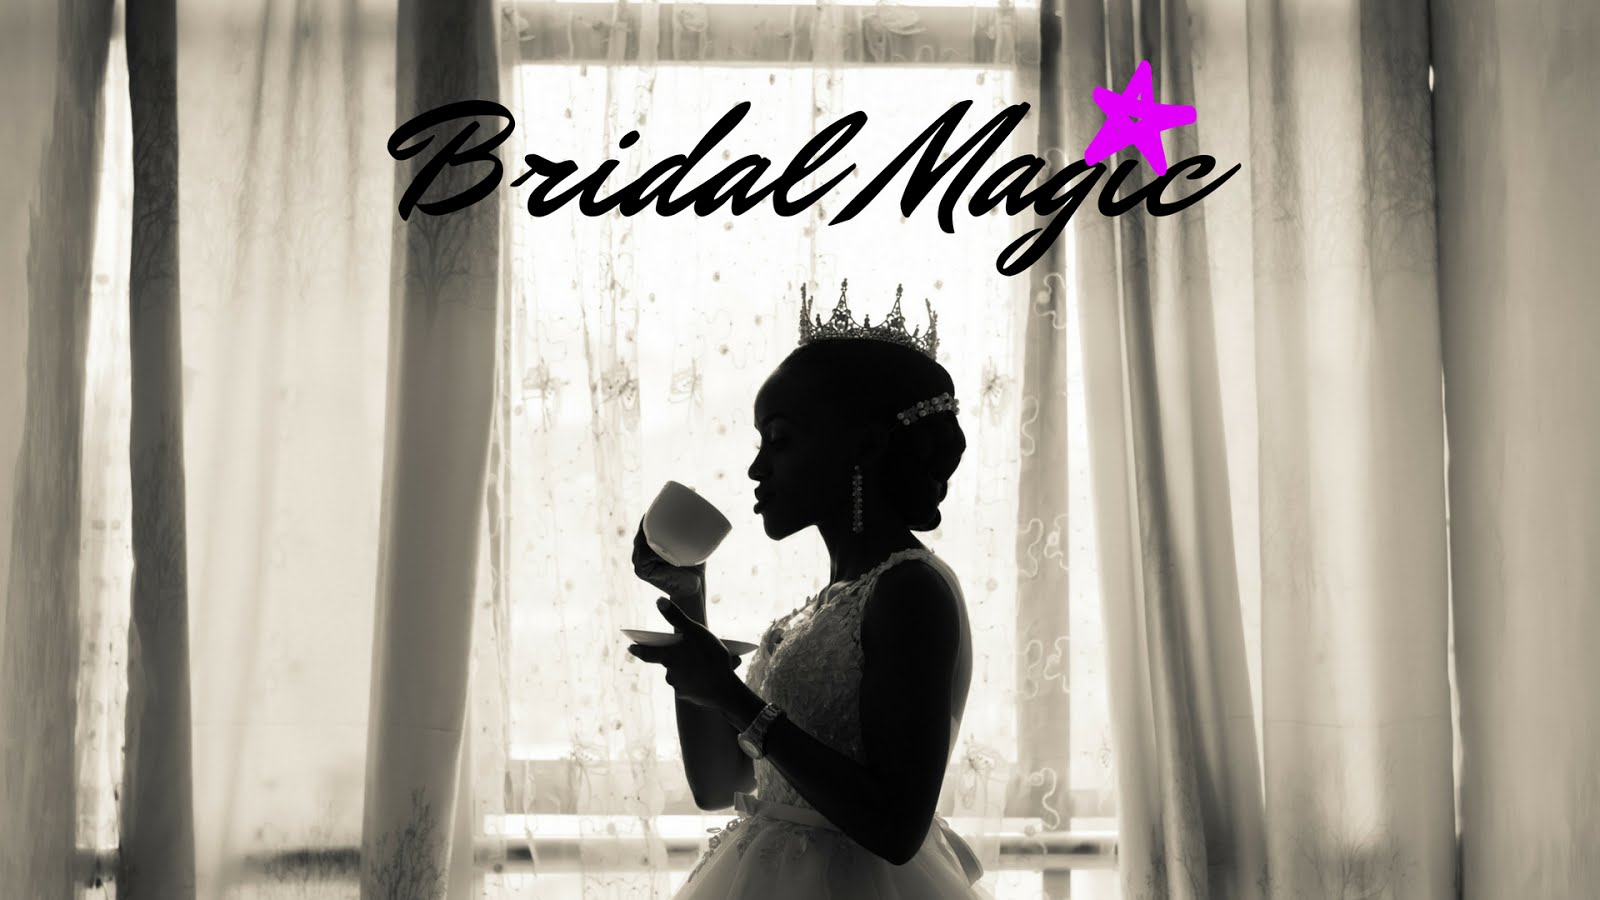 Bridal Magic